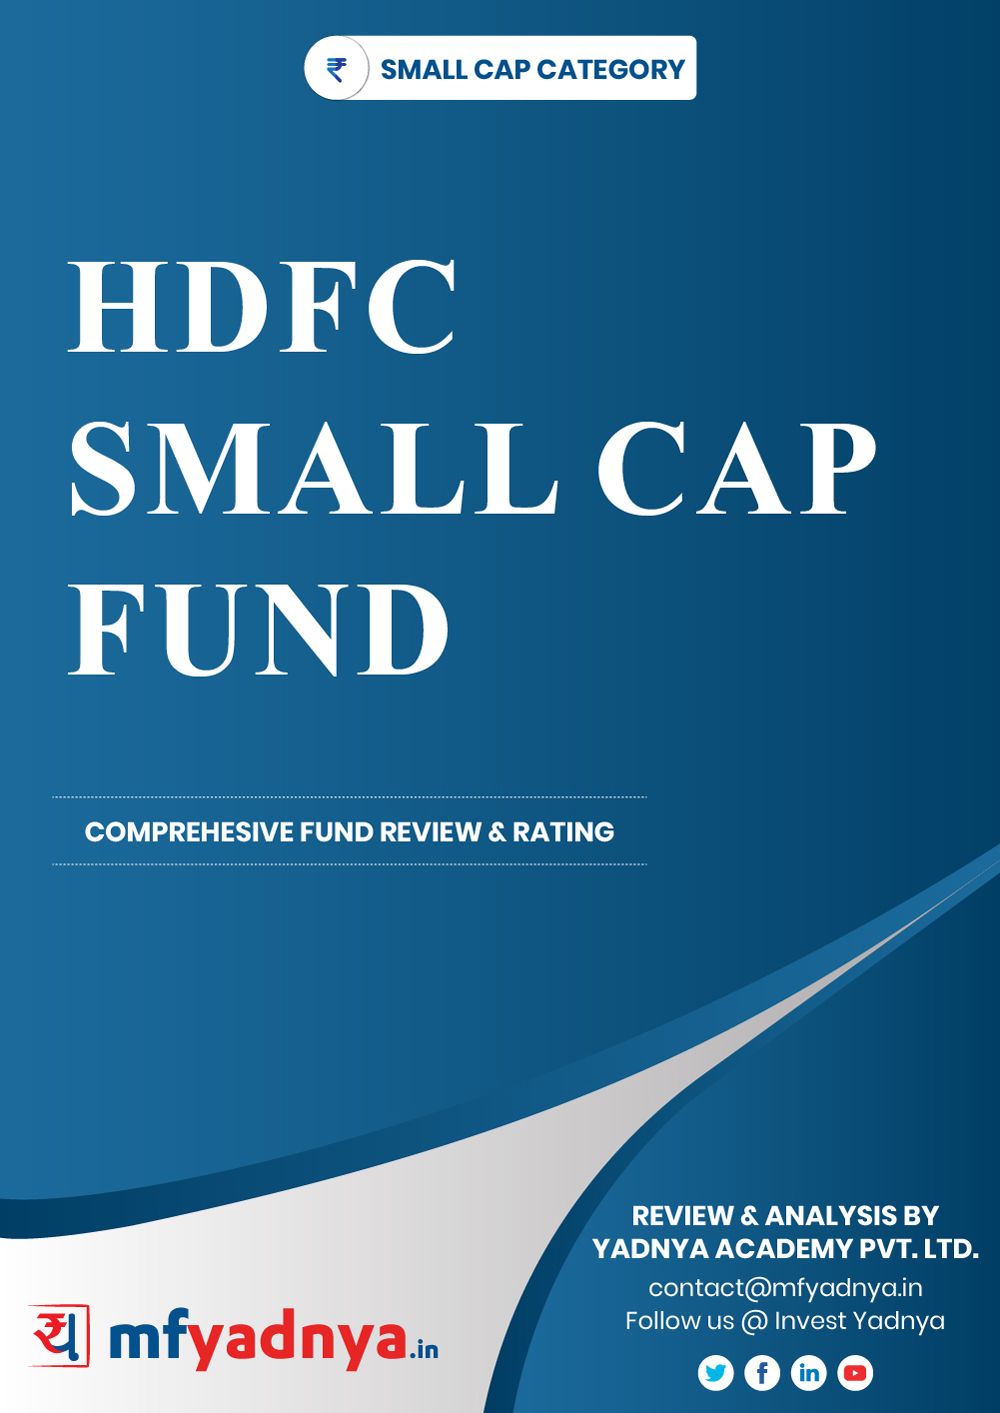 This e-book offers a comprehensive mutual fund review of HDFC Small Cap Fund. It reviews the fund's return, ratio, allocation etc. ✔ Detailed Mutual Fund Analysis ✔ Latest Research Reports